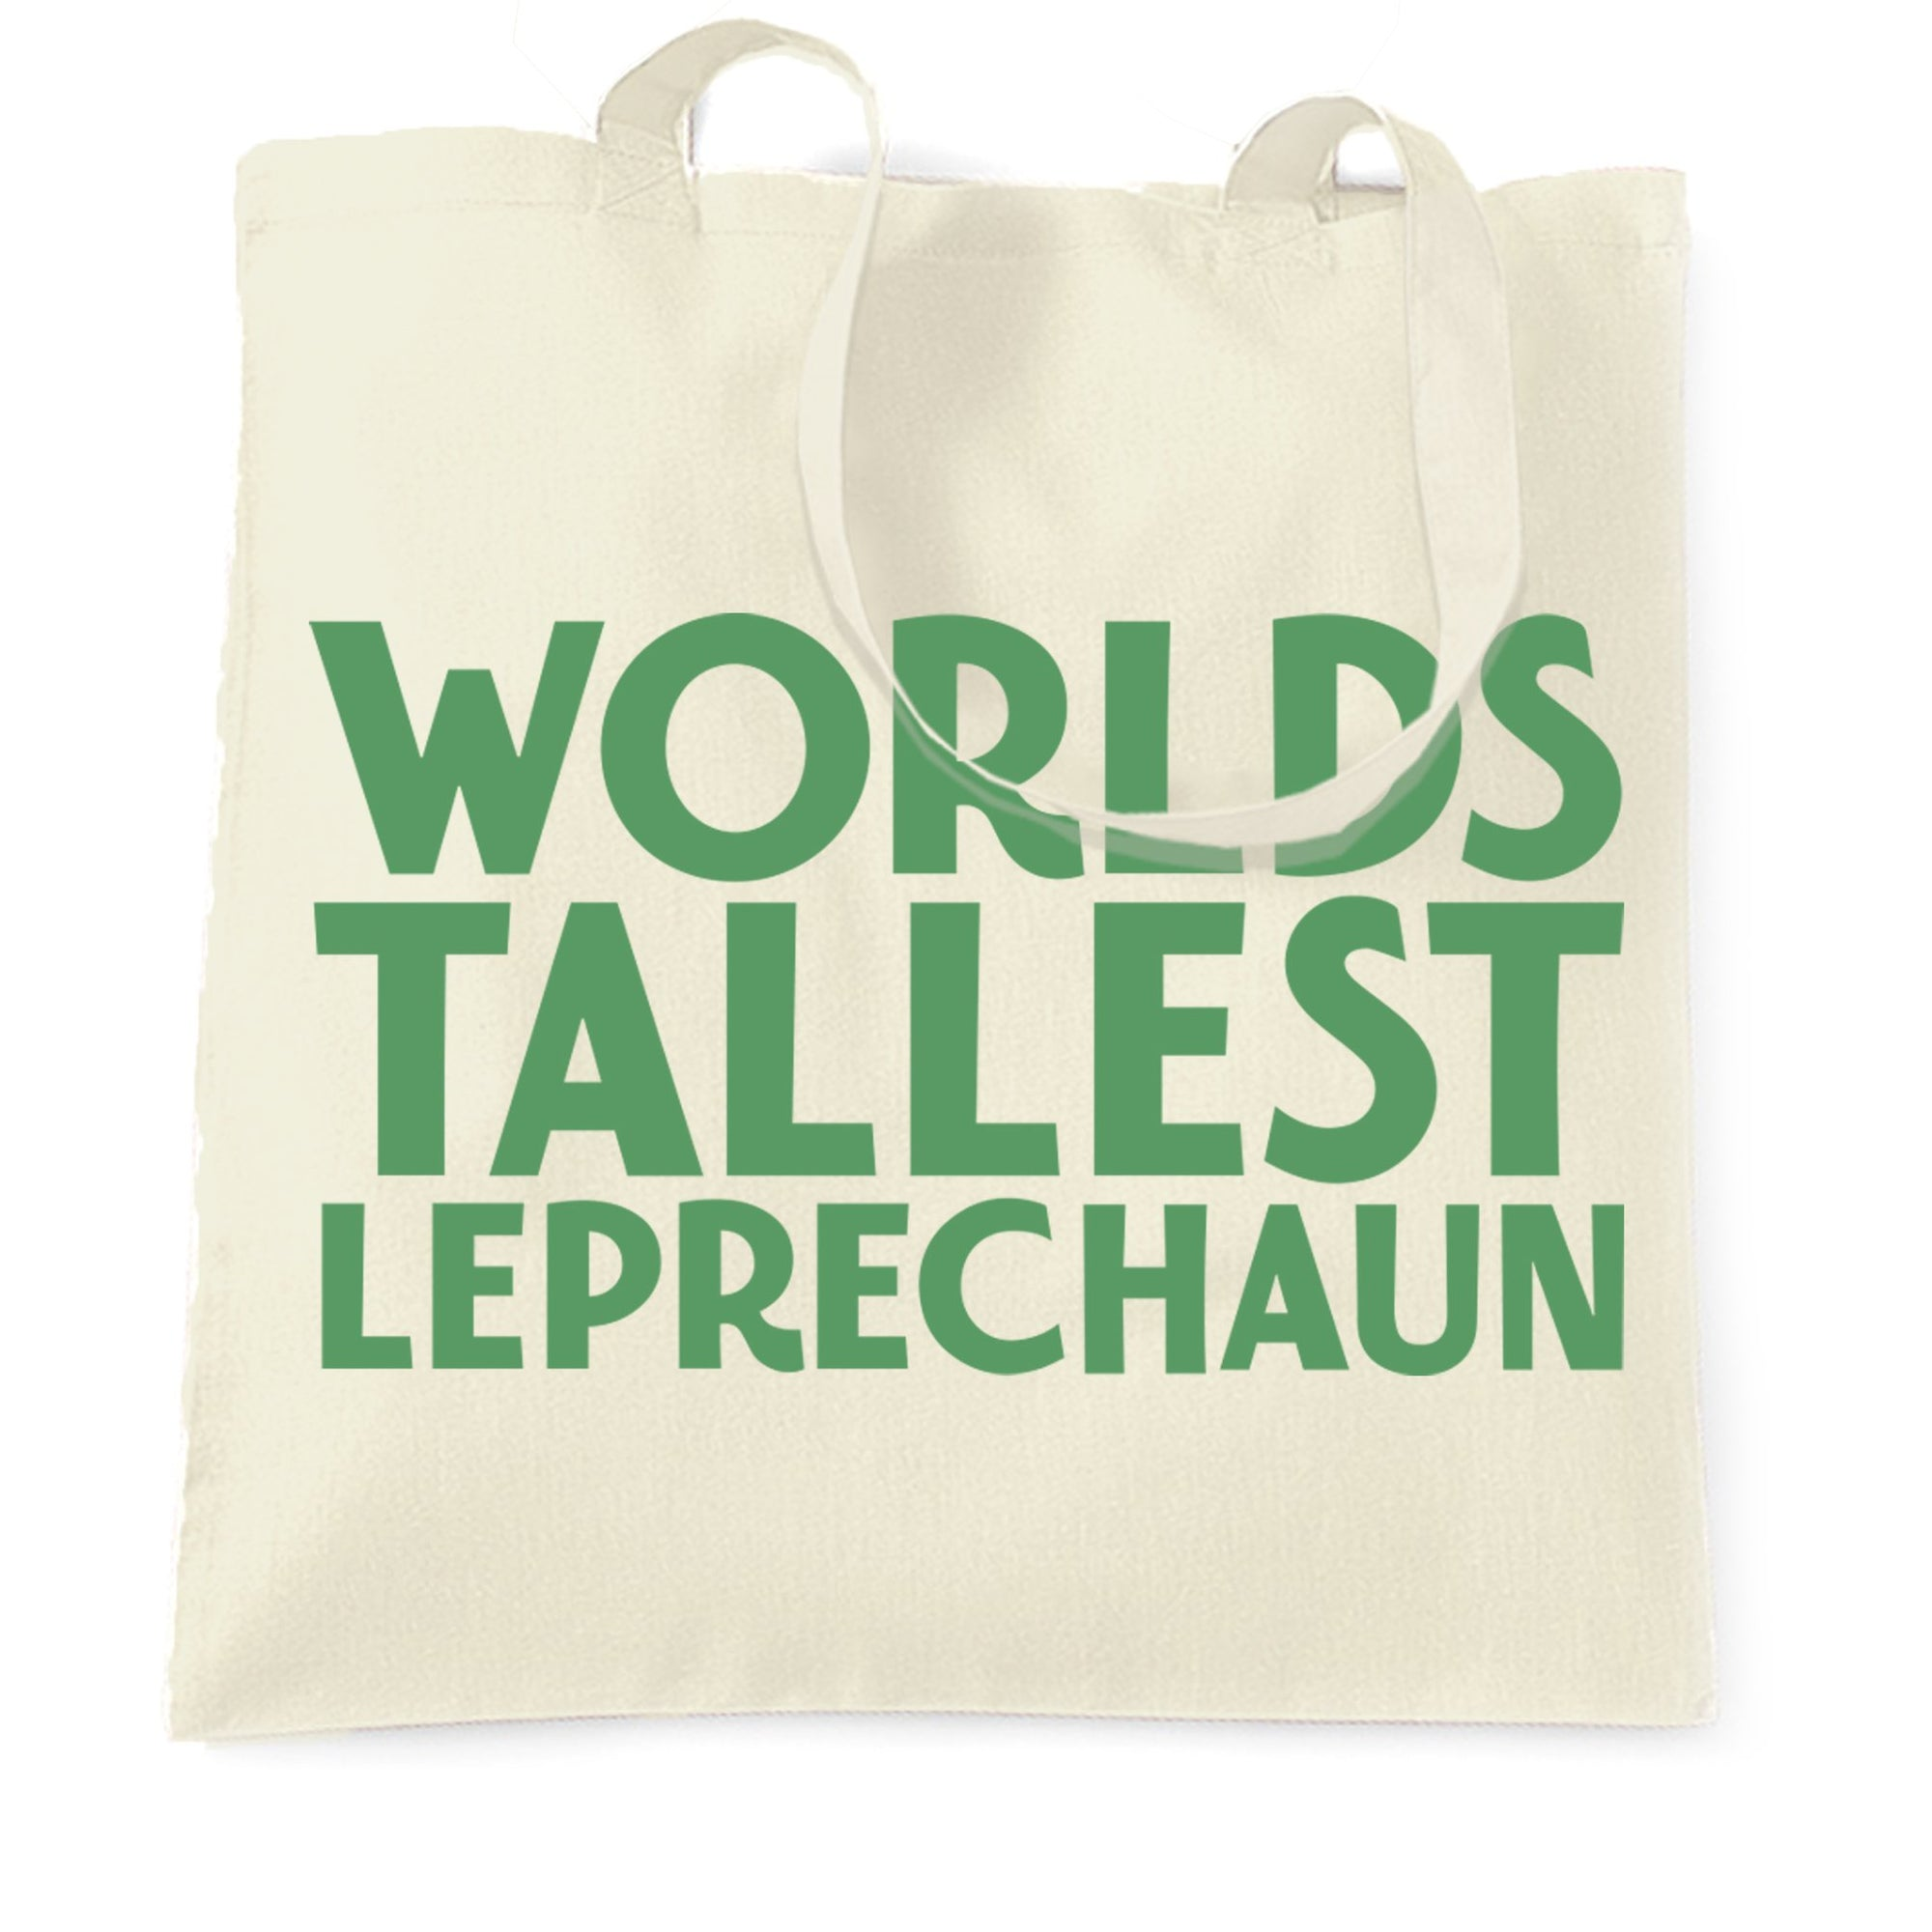 St Patricks Day Joke Tote Bag Worlds Tallest Leprechaun